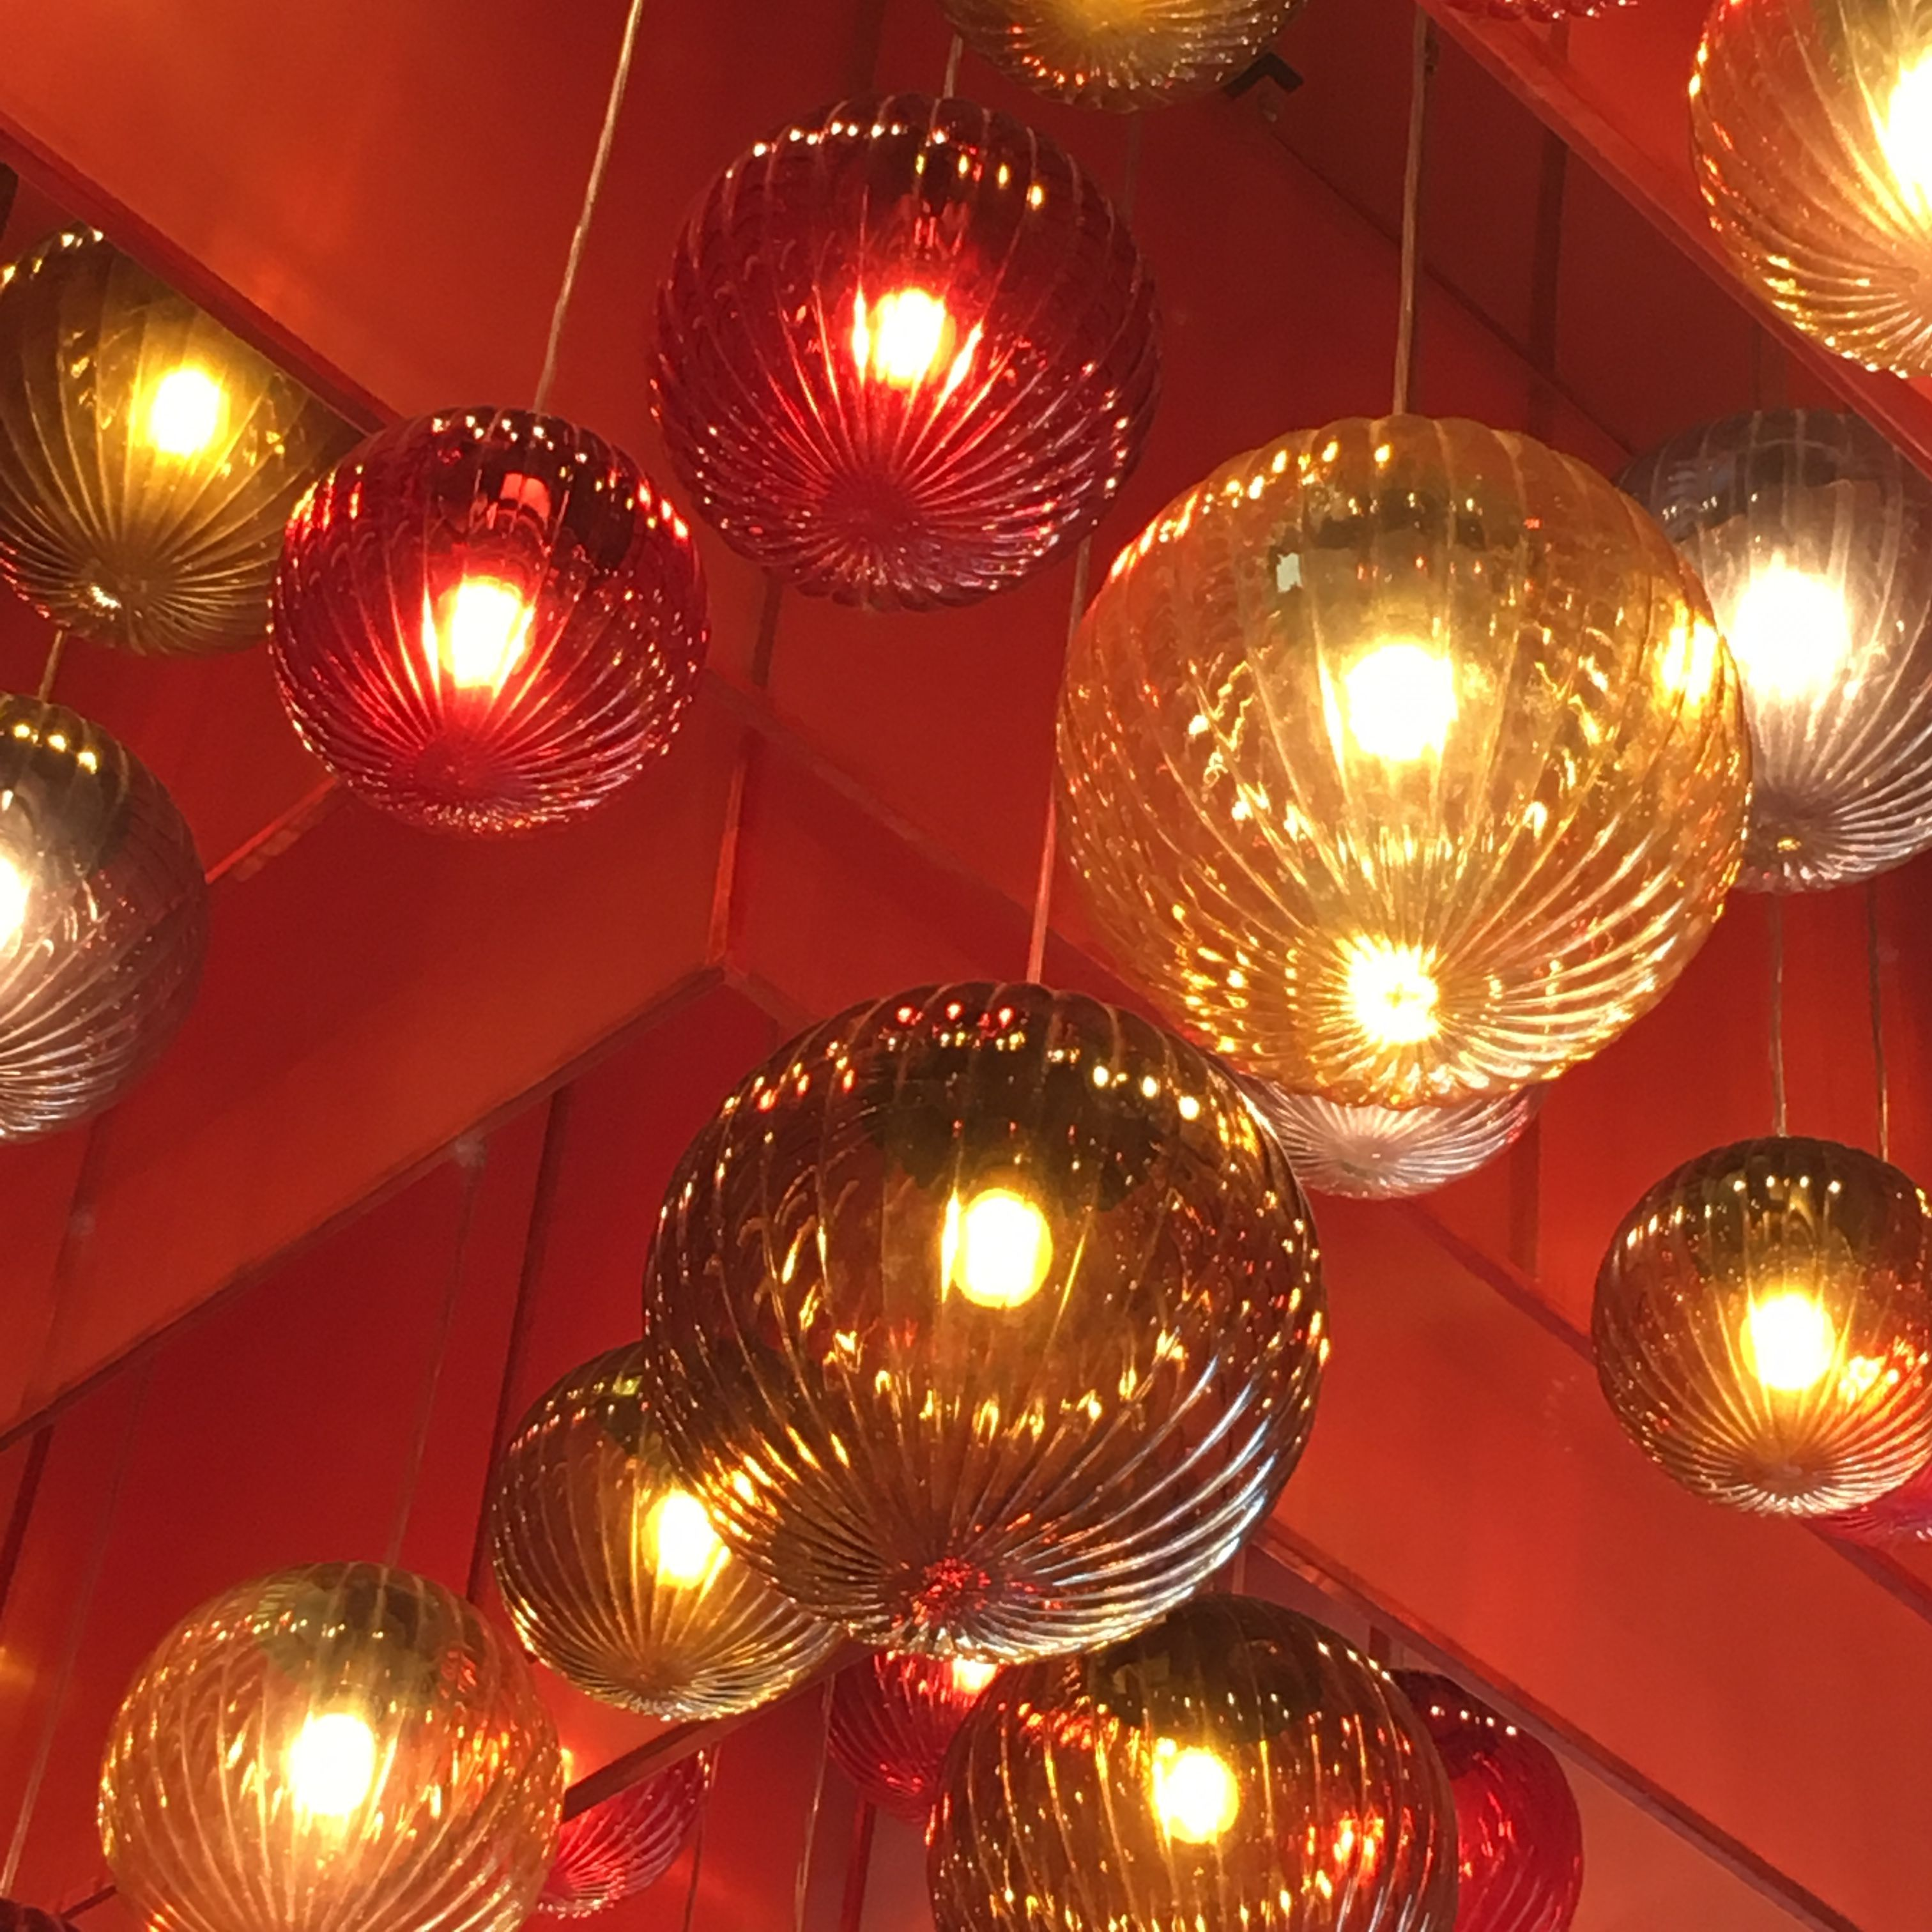 Golden Nugget Hotel And Casino Lake Charles Louisiana Golden Nugget Hotel Chandelier Ceiling Lights